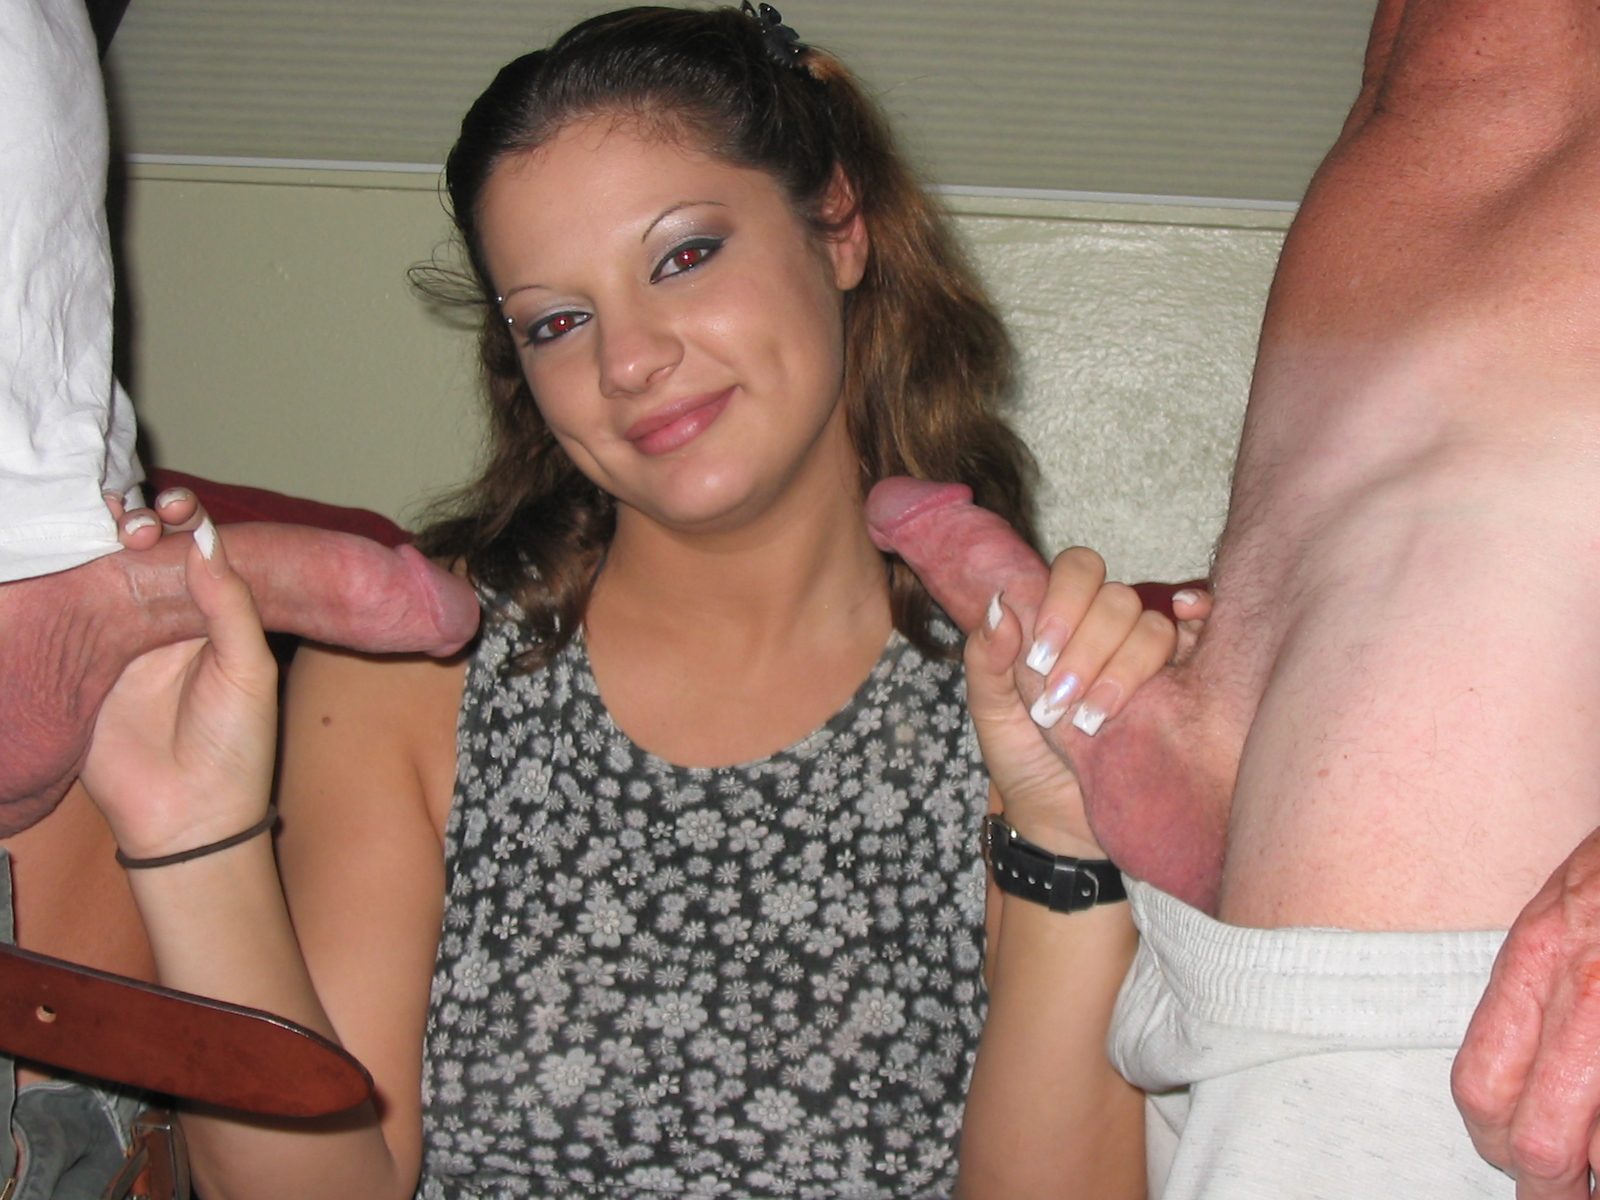 Woman amateur stripping